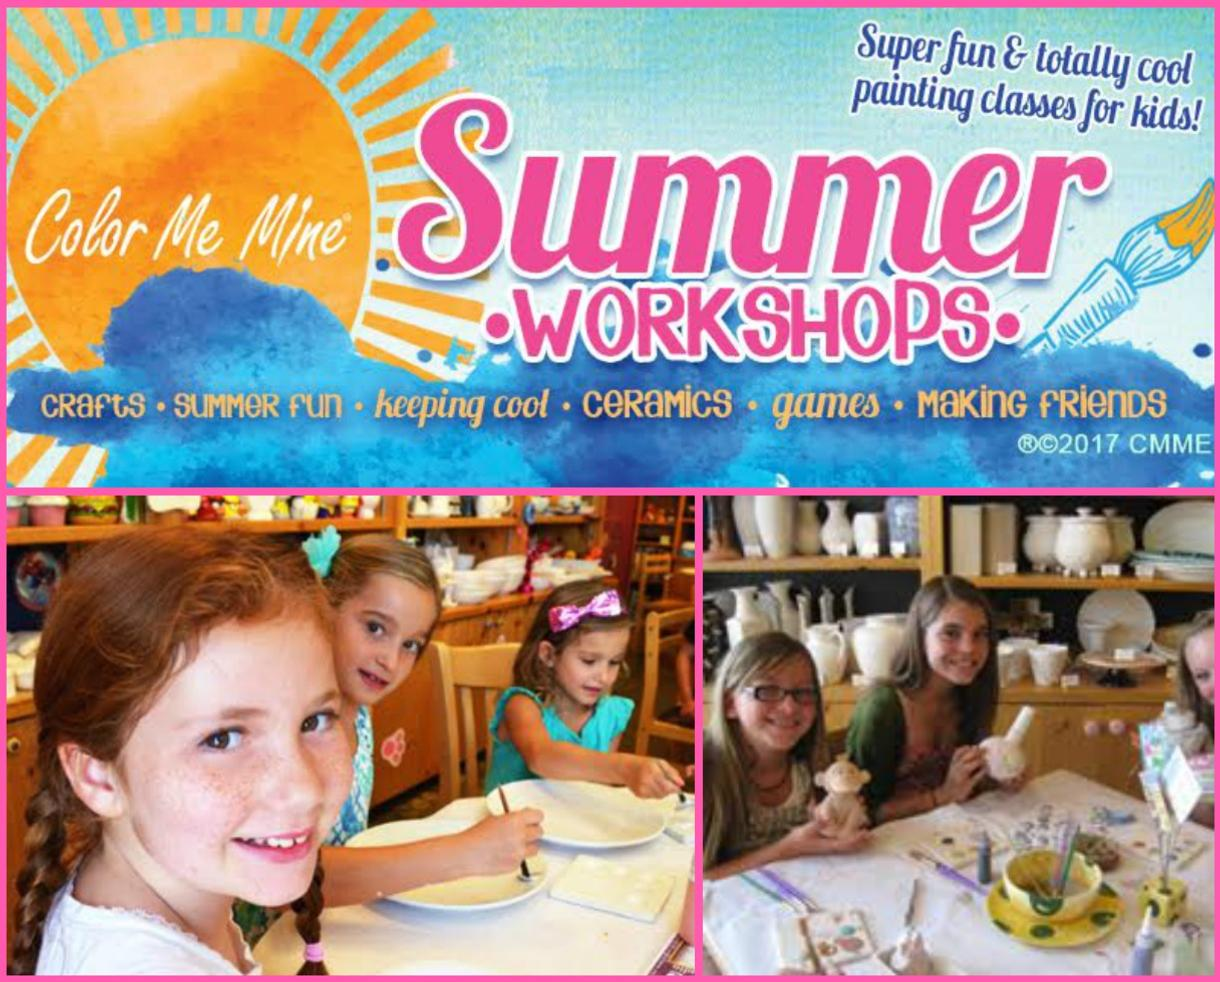 $155 for Color Me Mine Rockville Art Camp for Ages 7-12 (25% Off)